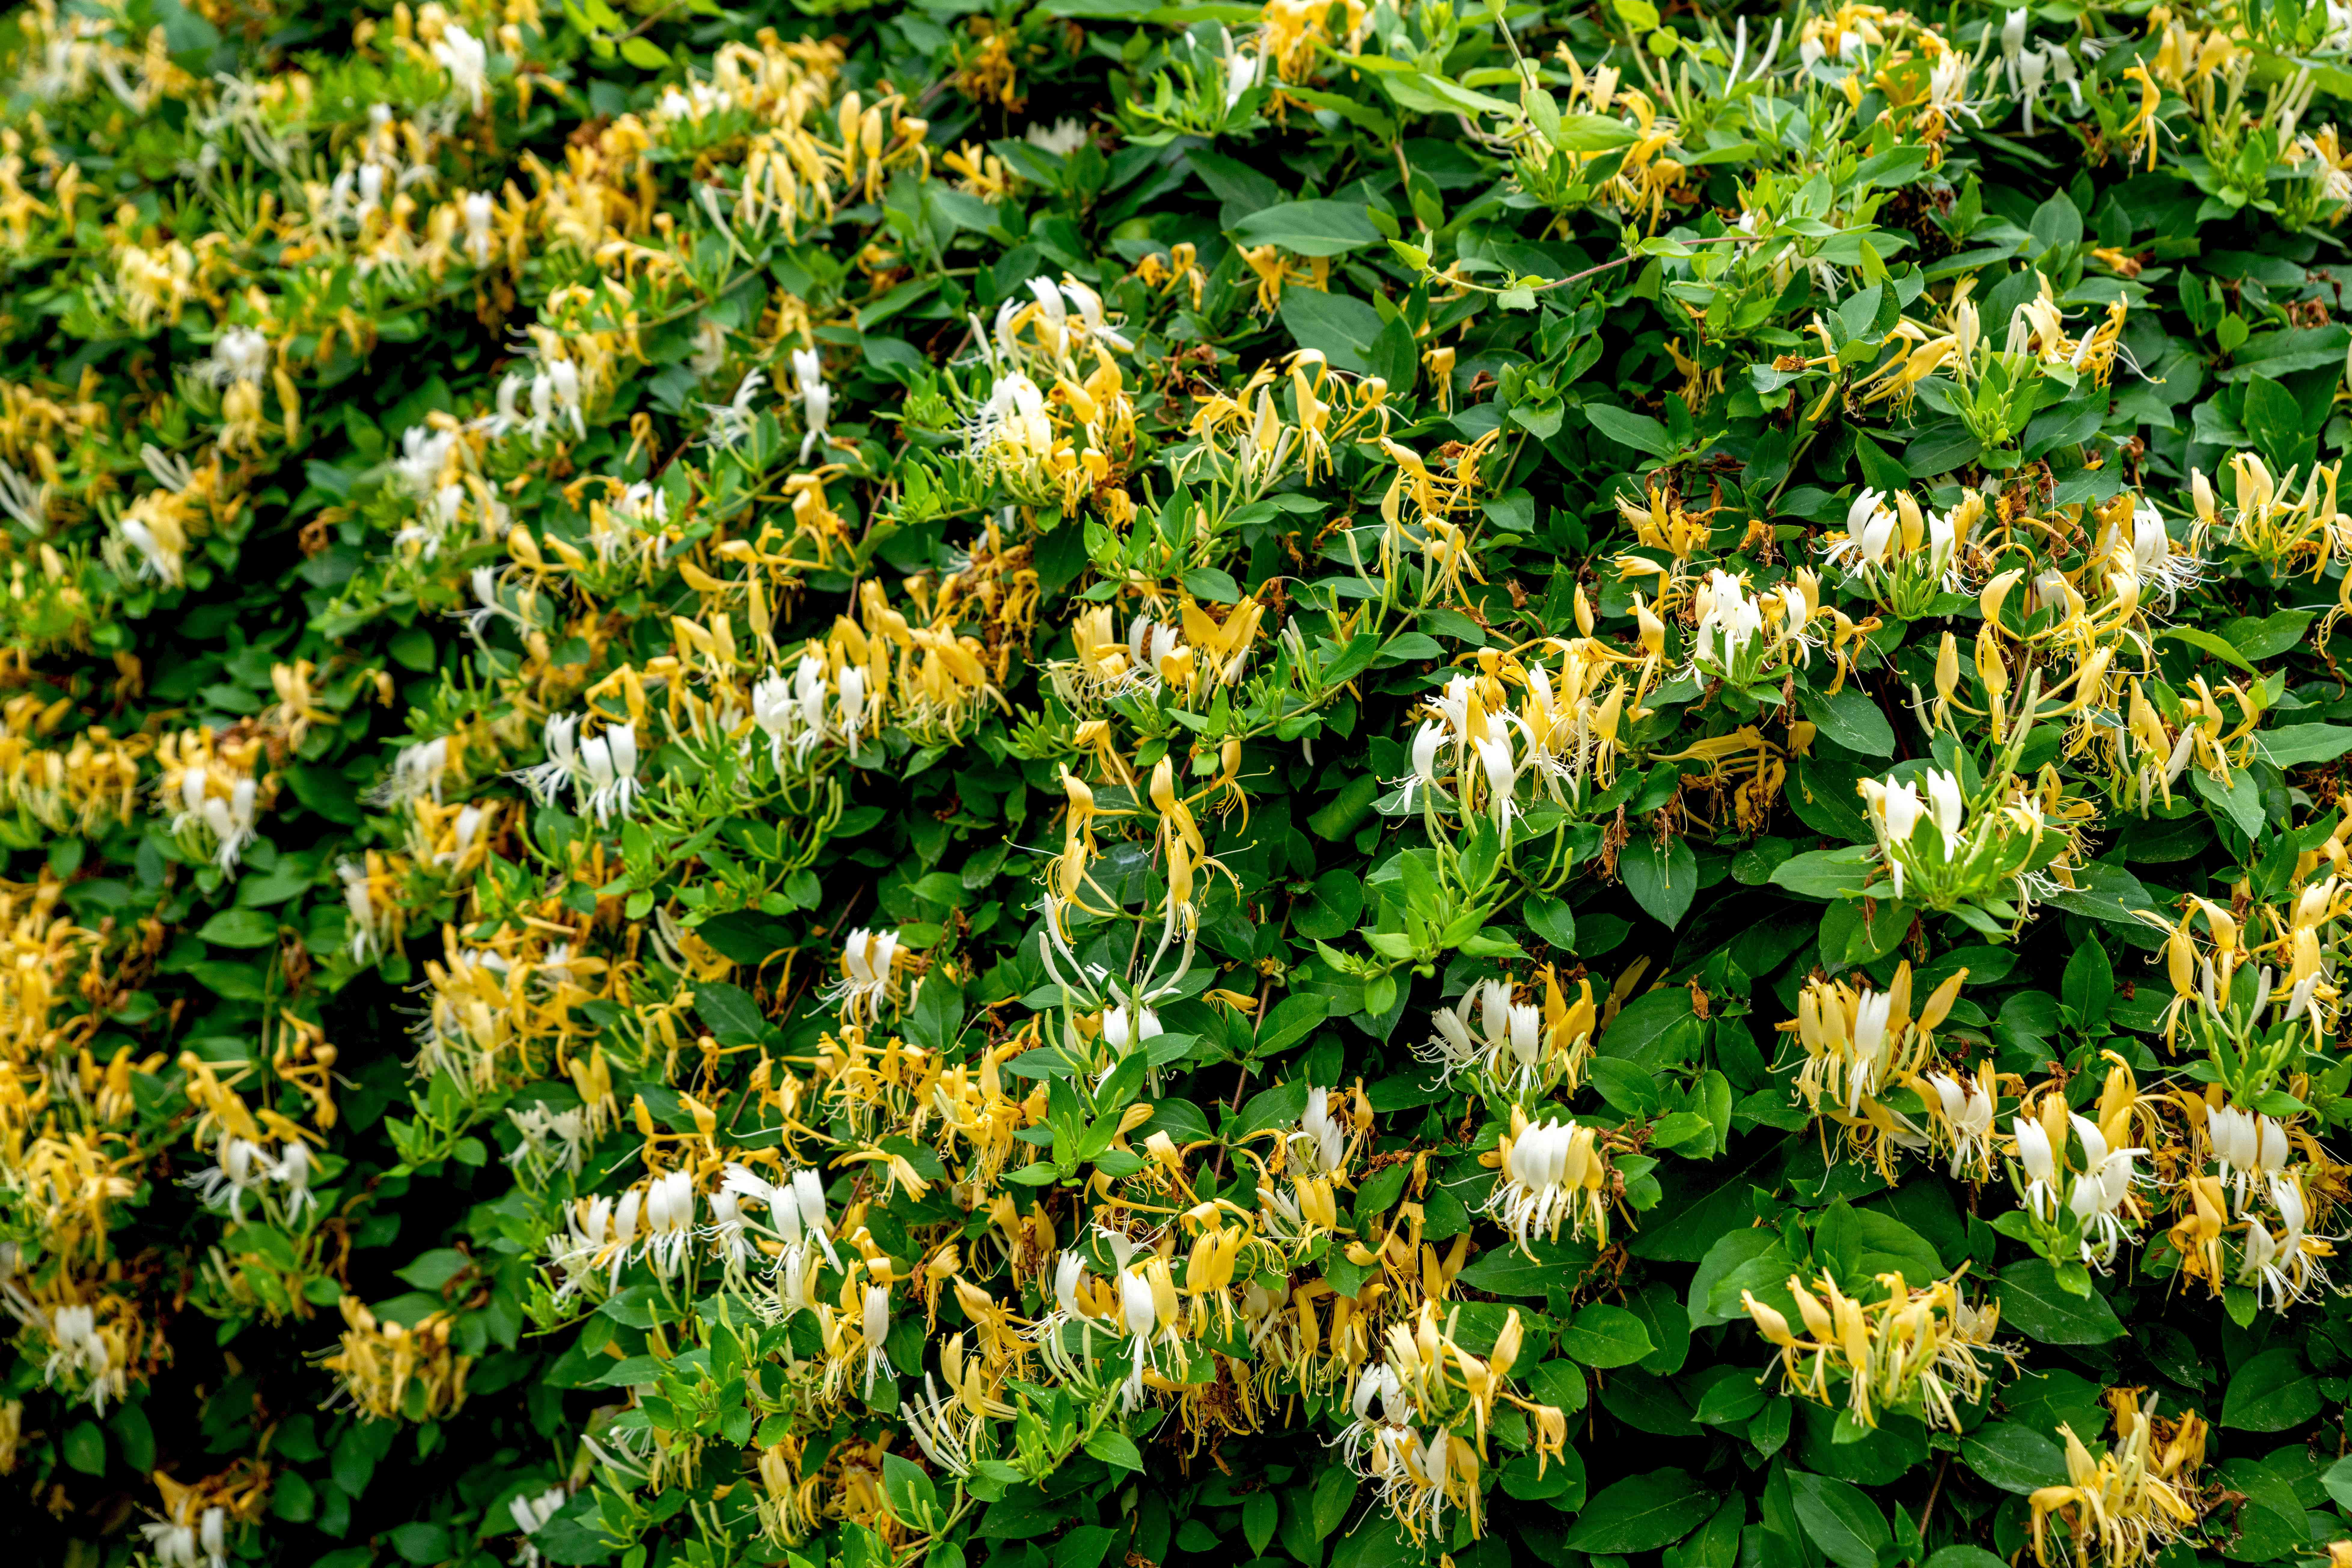 Honeysuckle vines with yellow and white trumpet-shaped flowers between leaves